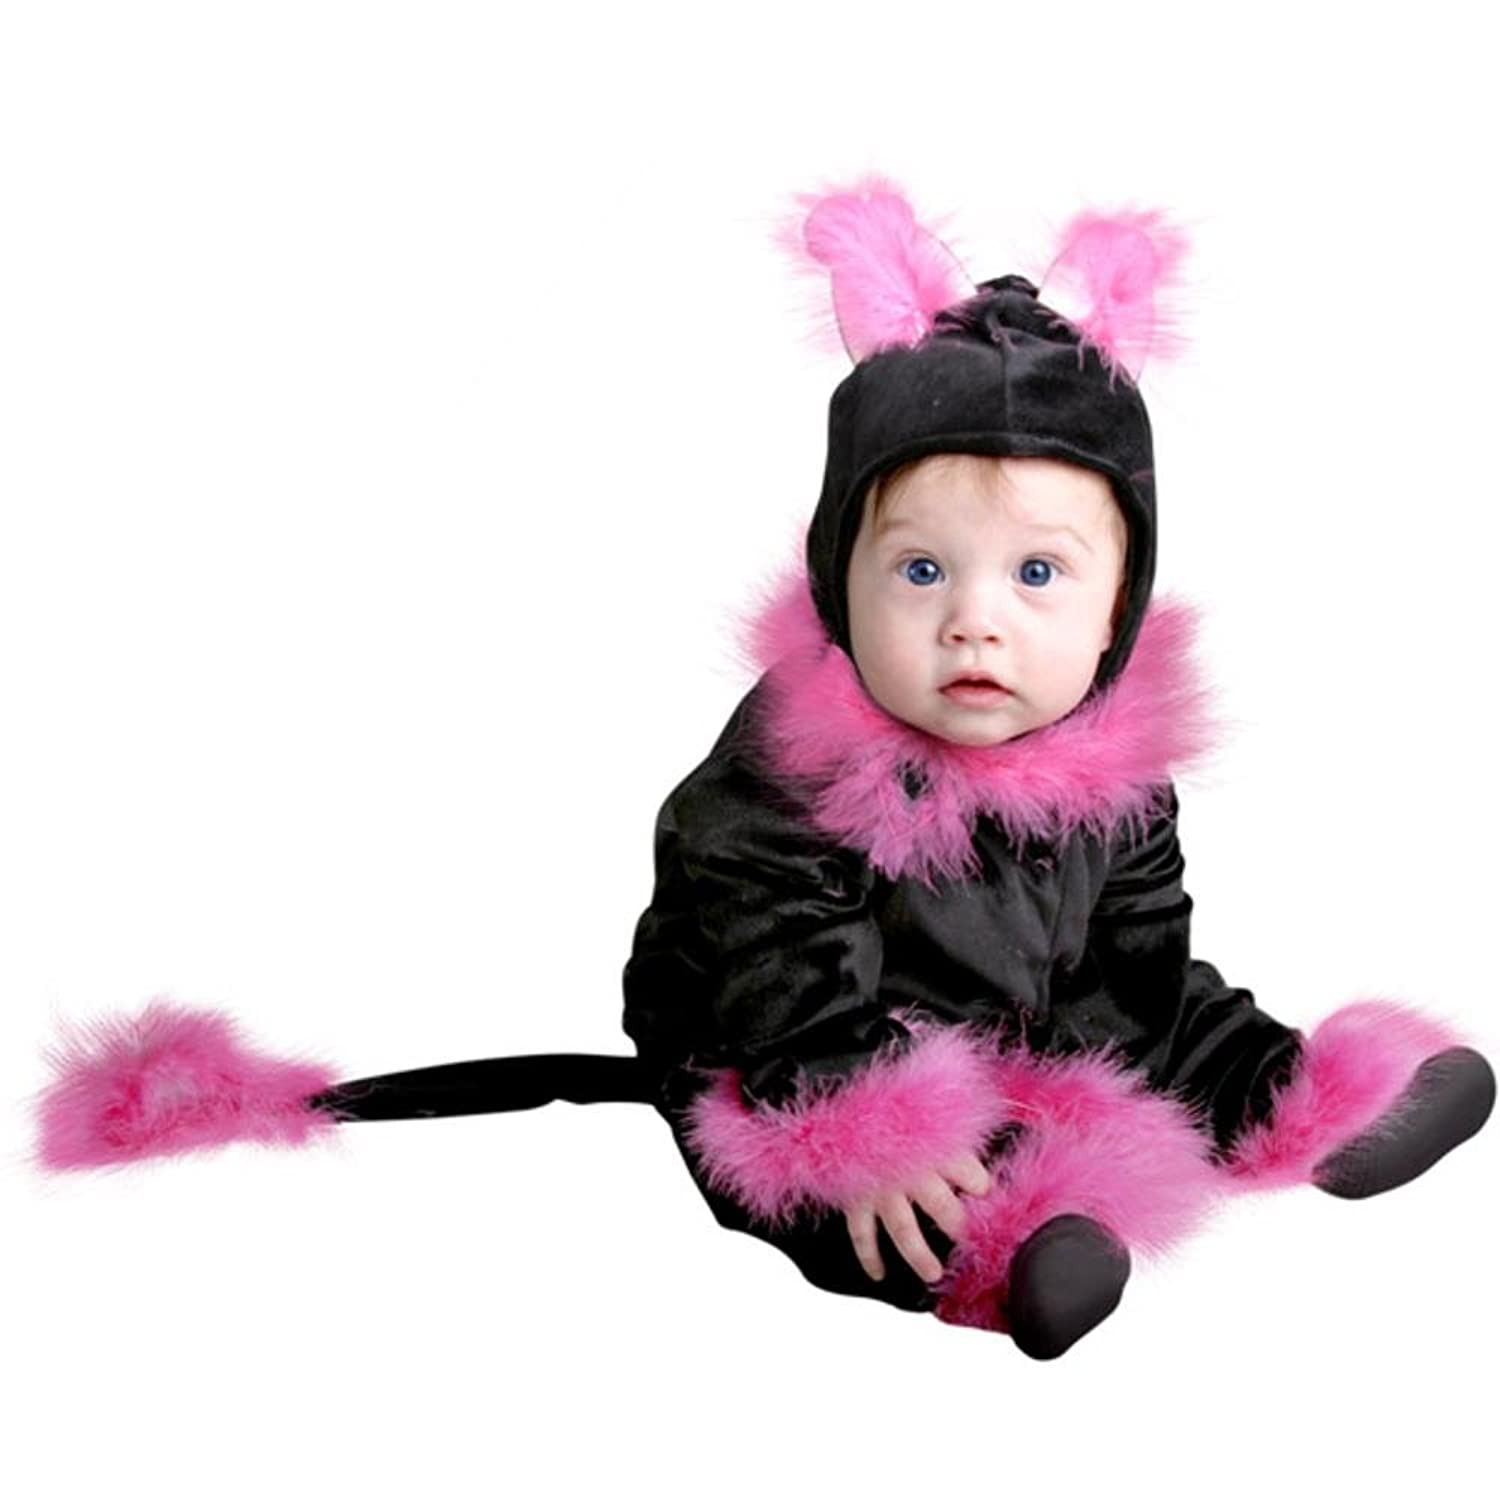 amazoncom baby girl pink cat infant halloween costume 6 18 months clothing - Halloween Costume For Baby Girls